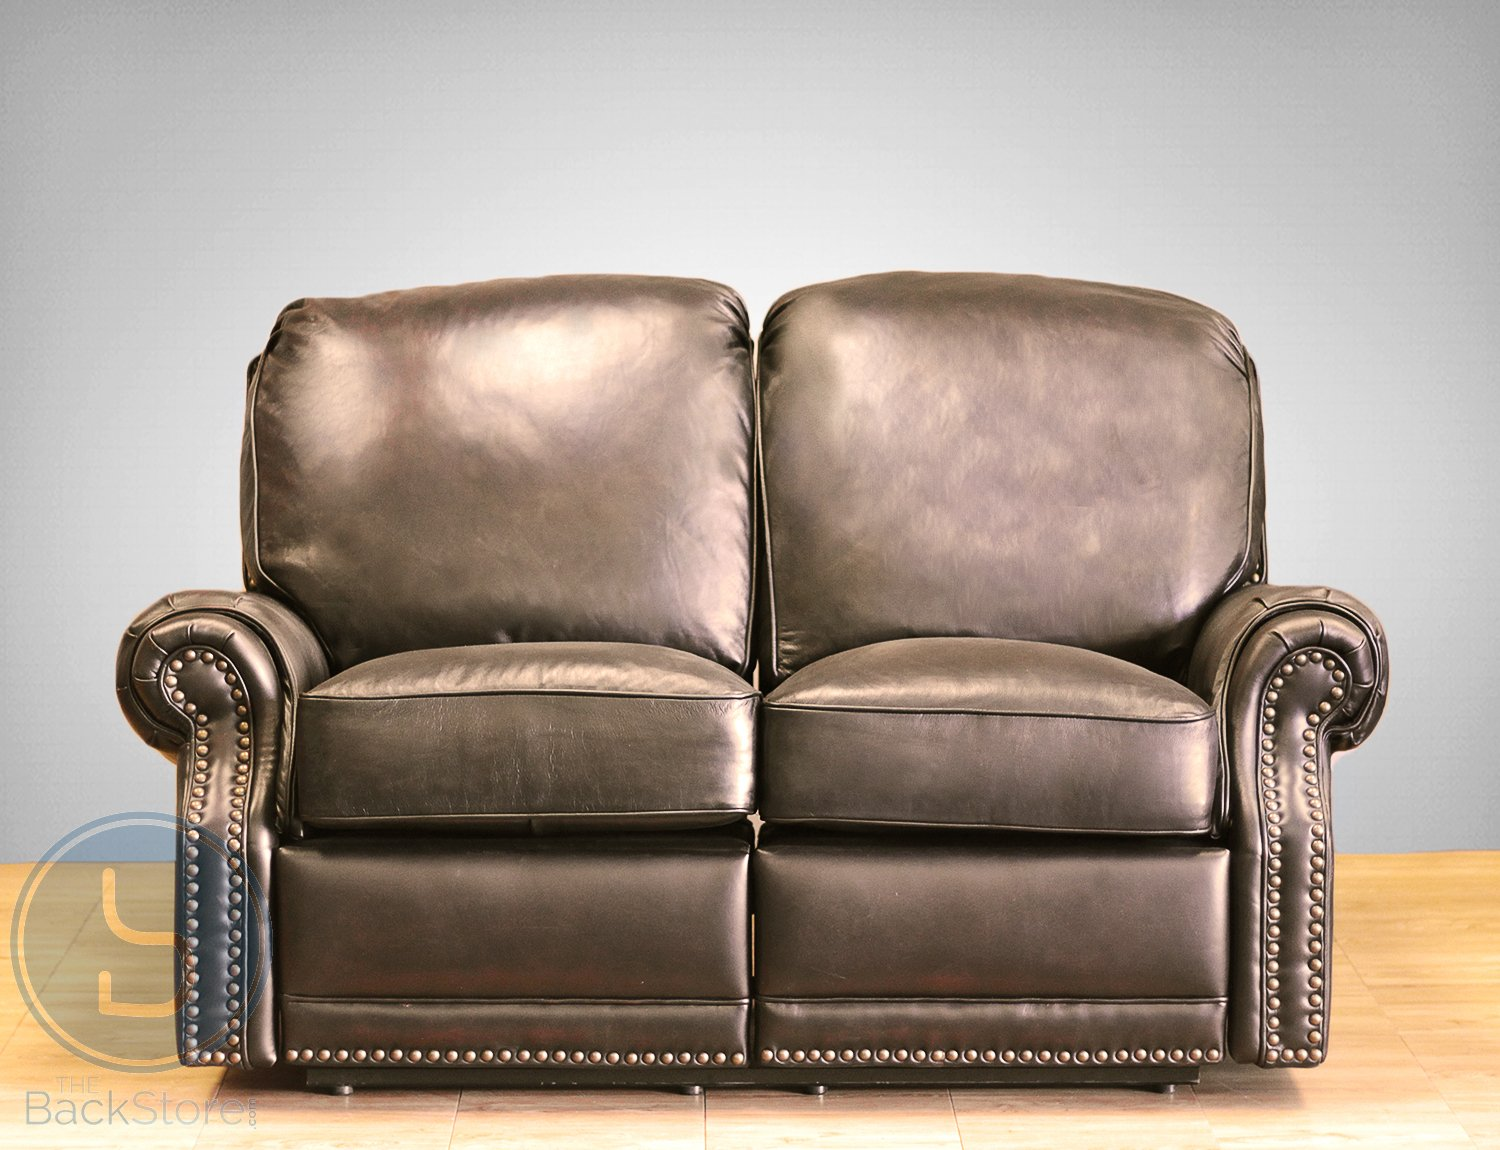 Amazon.com BarcaLounger Premier II Leather Reclining Loveseat - Stetson Coffee (LoveSeat Power Recline) Kitchen u0026 Dining & Amazon.com: BarcaLounger Premier II Leather Reclining Loveseat ... islam-shia.org